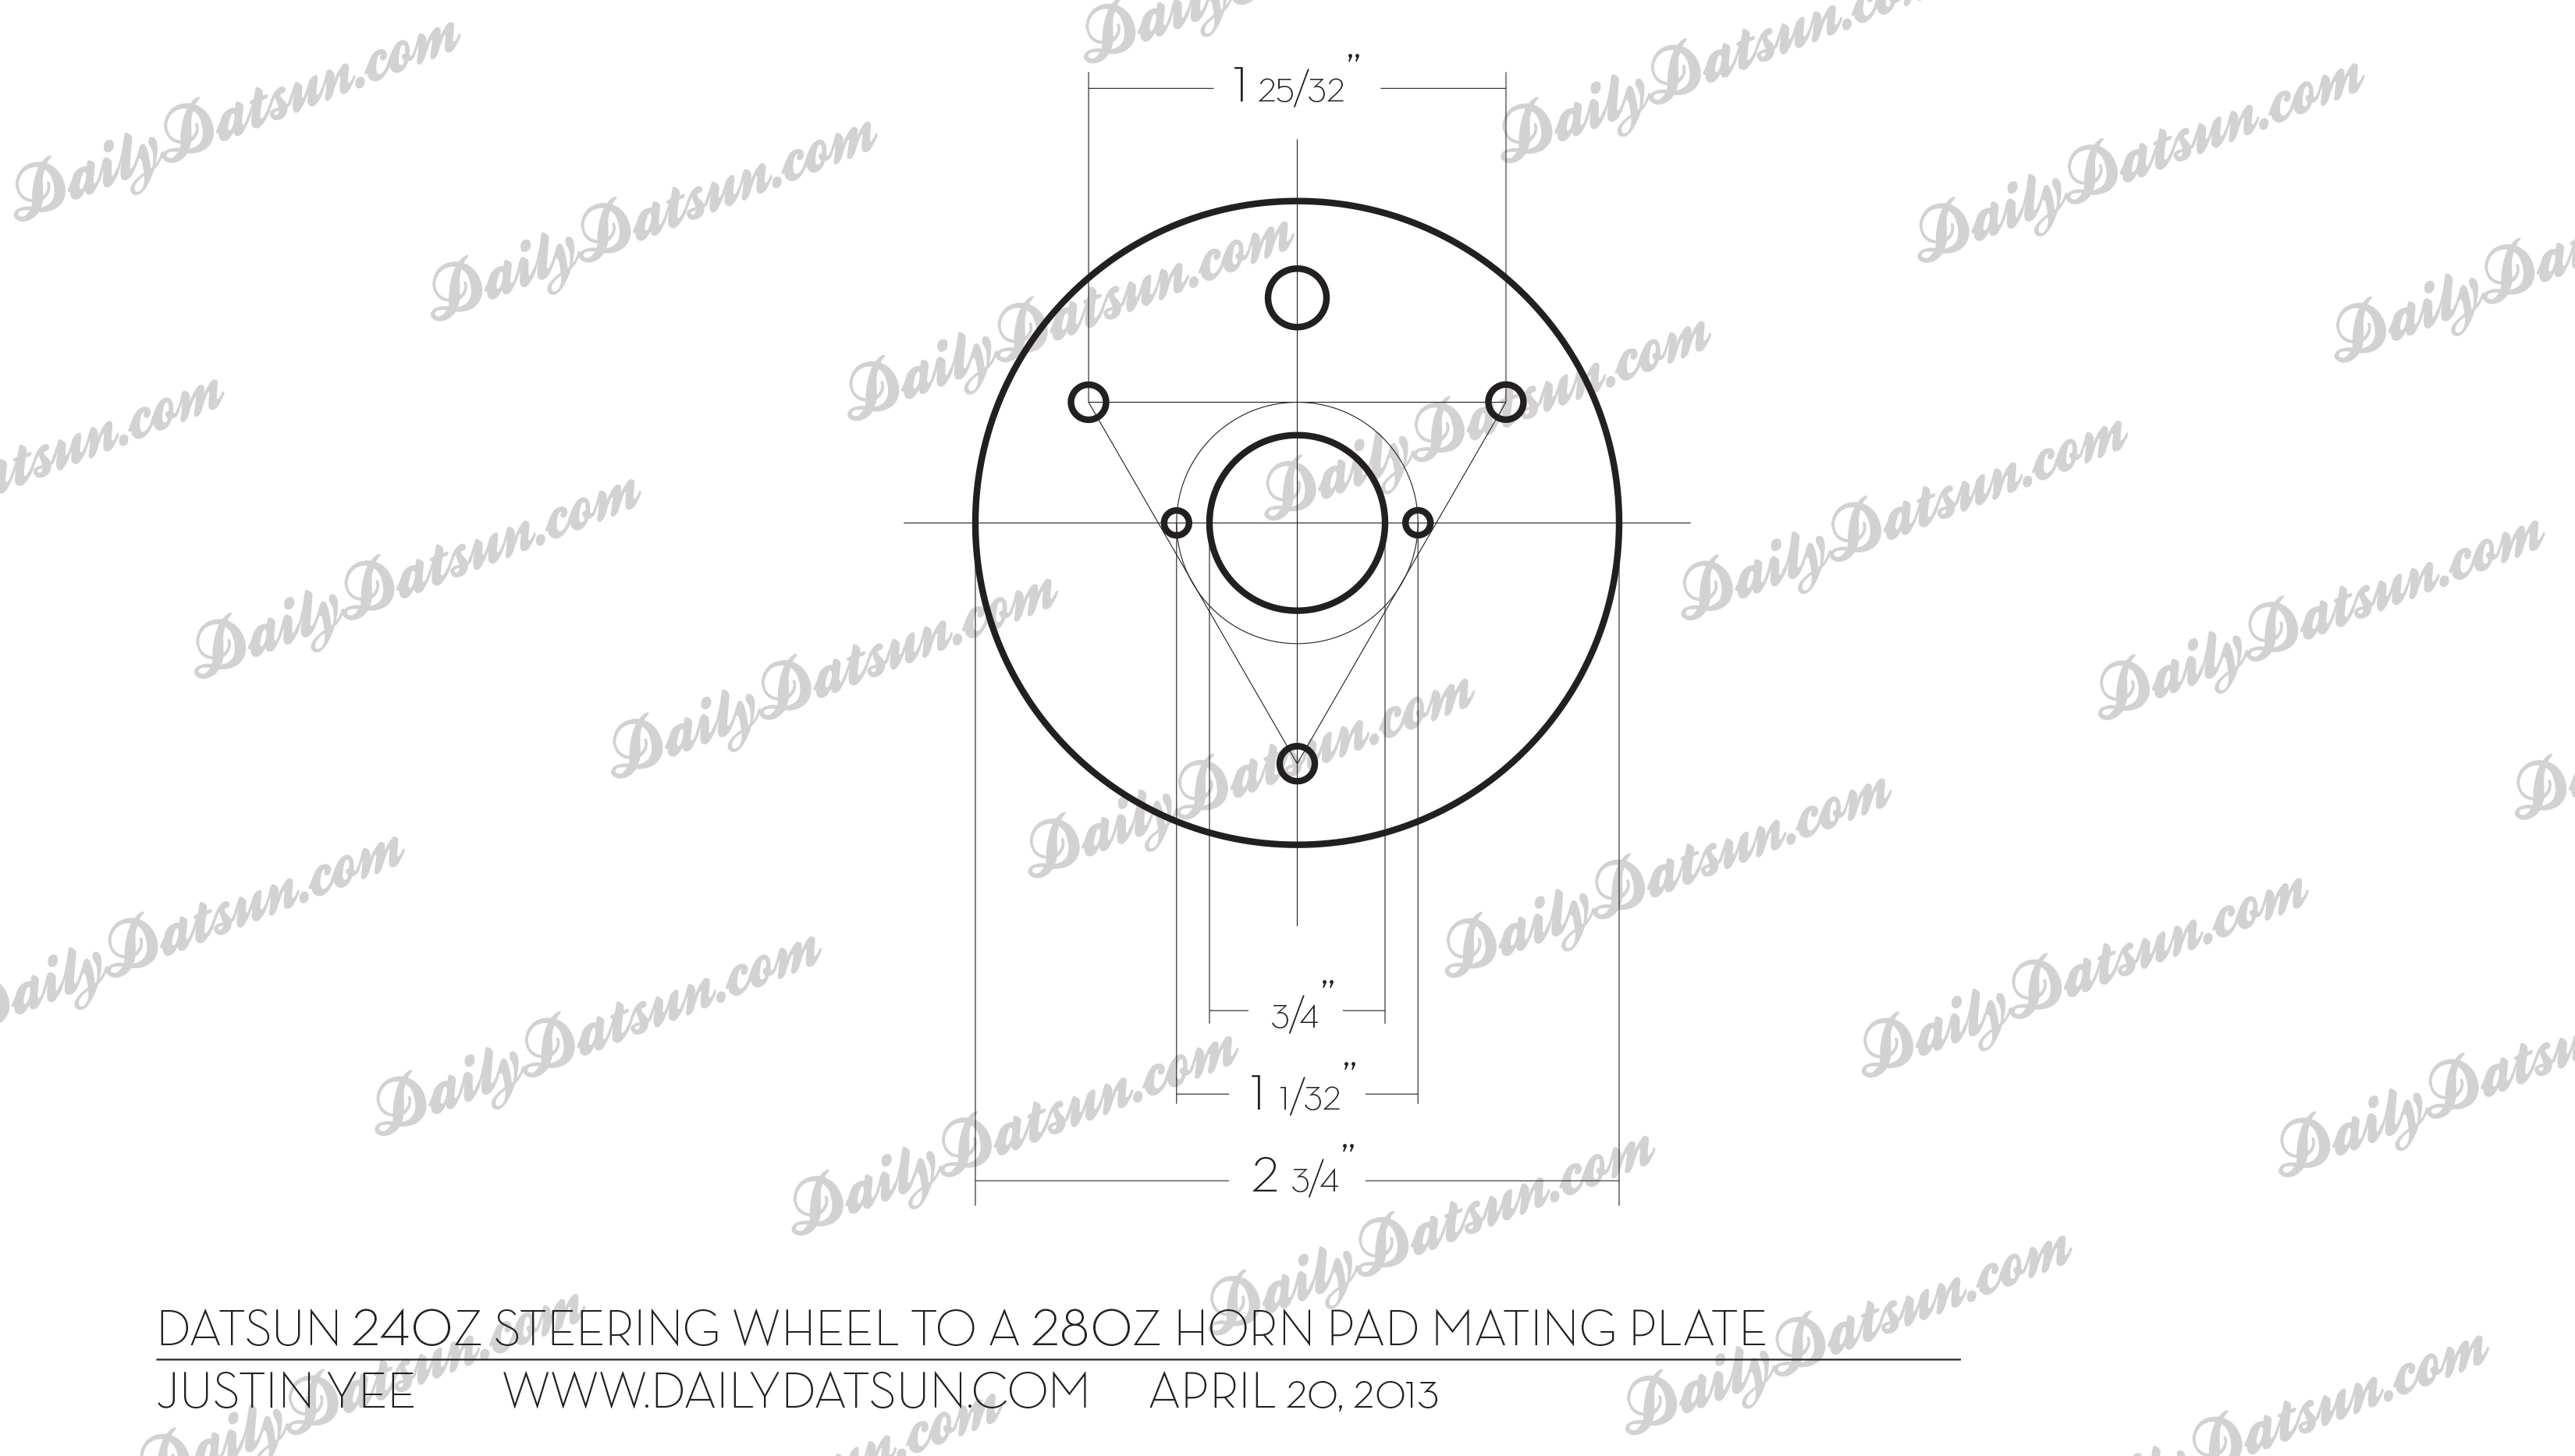 Electrics The Daily Datsun 1977 280z Fuel Injection Wiring Diagram Dailydatsun 240z To Hornmatingplate Copy